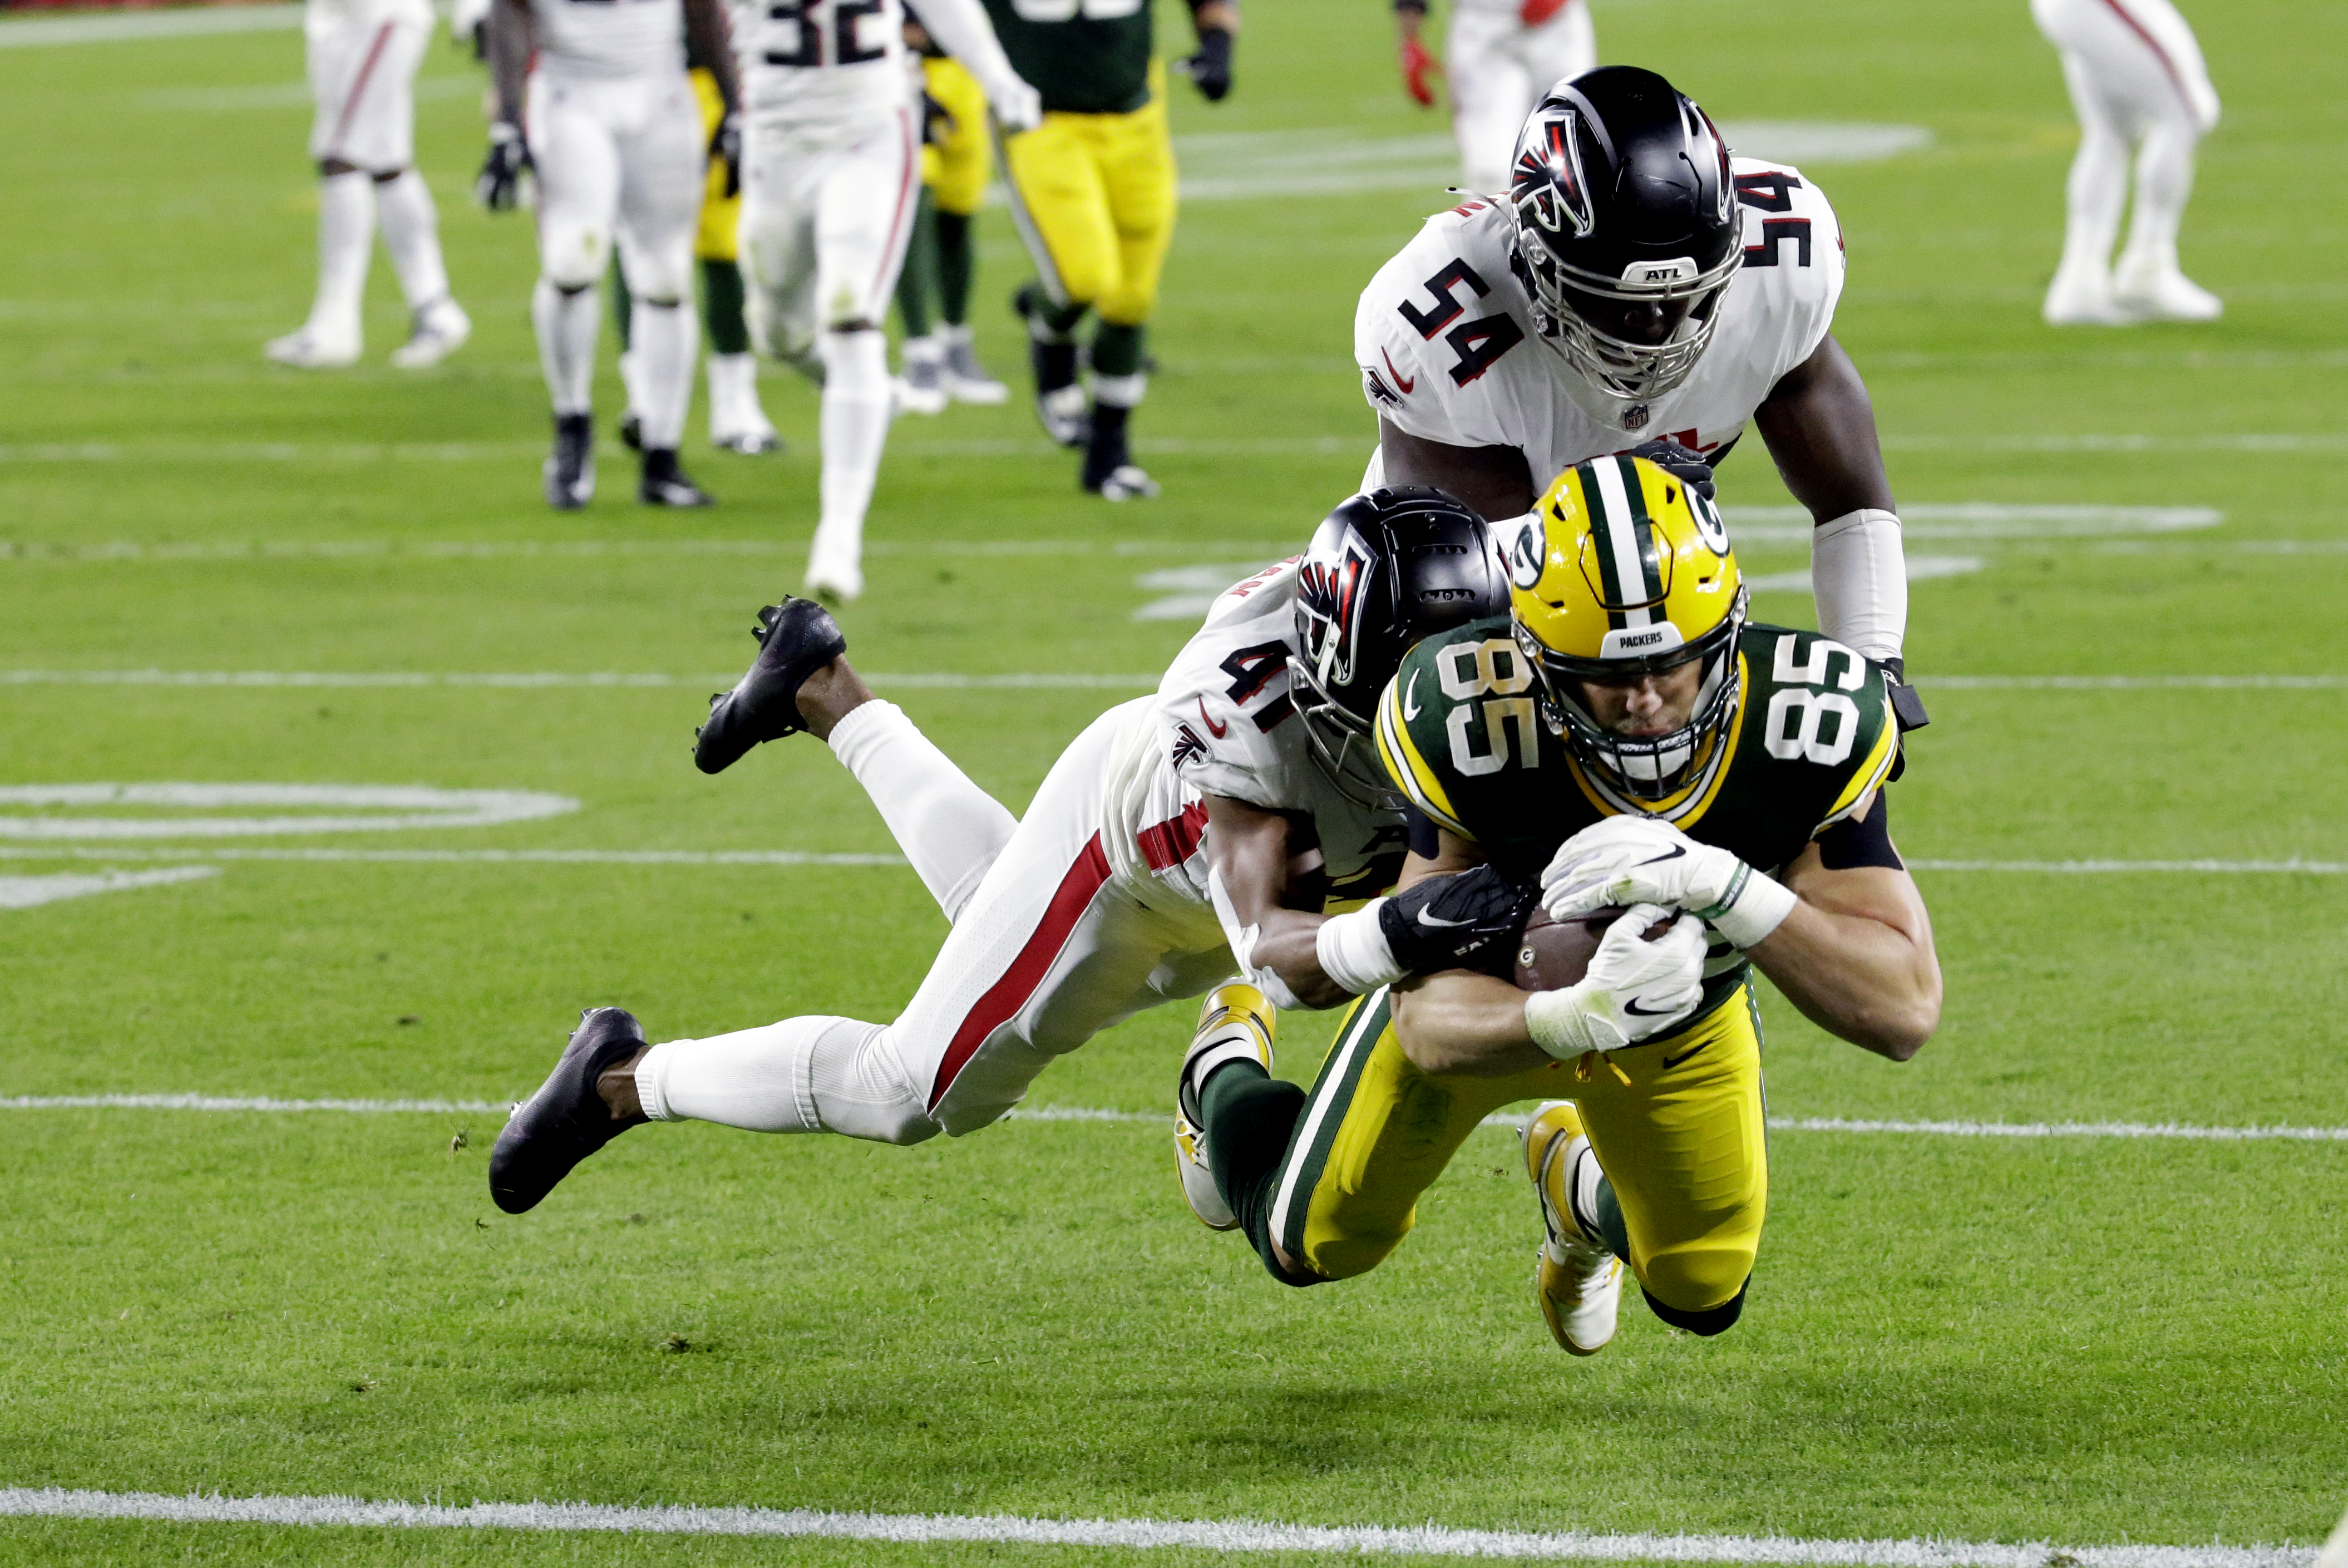 Aaron Rodgers Throws 4 Td Passes As The Green Bay Packers Roll Past The Atlanta Falcons Recap Score Stats And More Oregonlive Com